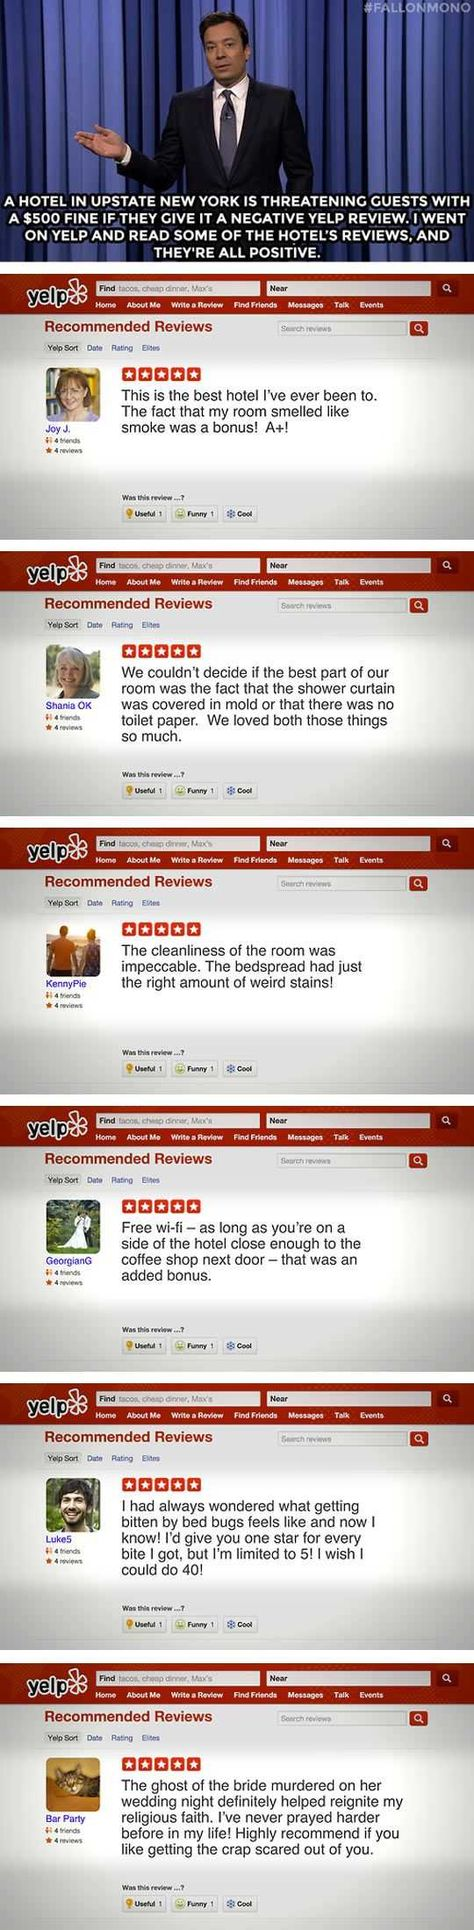 Hotel Threatens Against Bad Yelp Reviews With Images Laugh